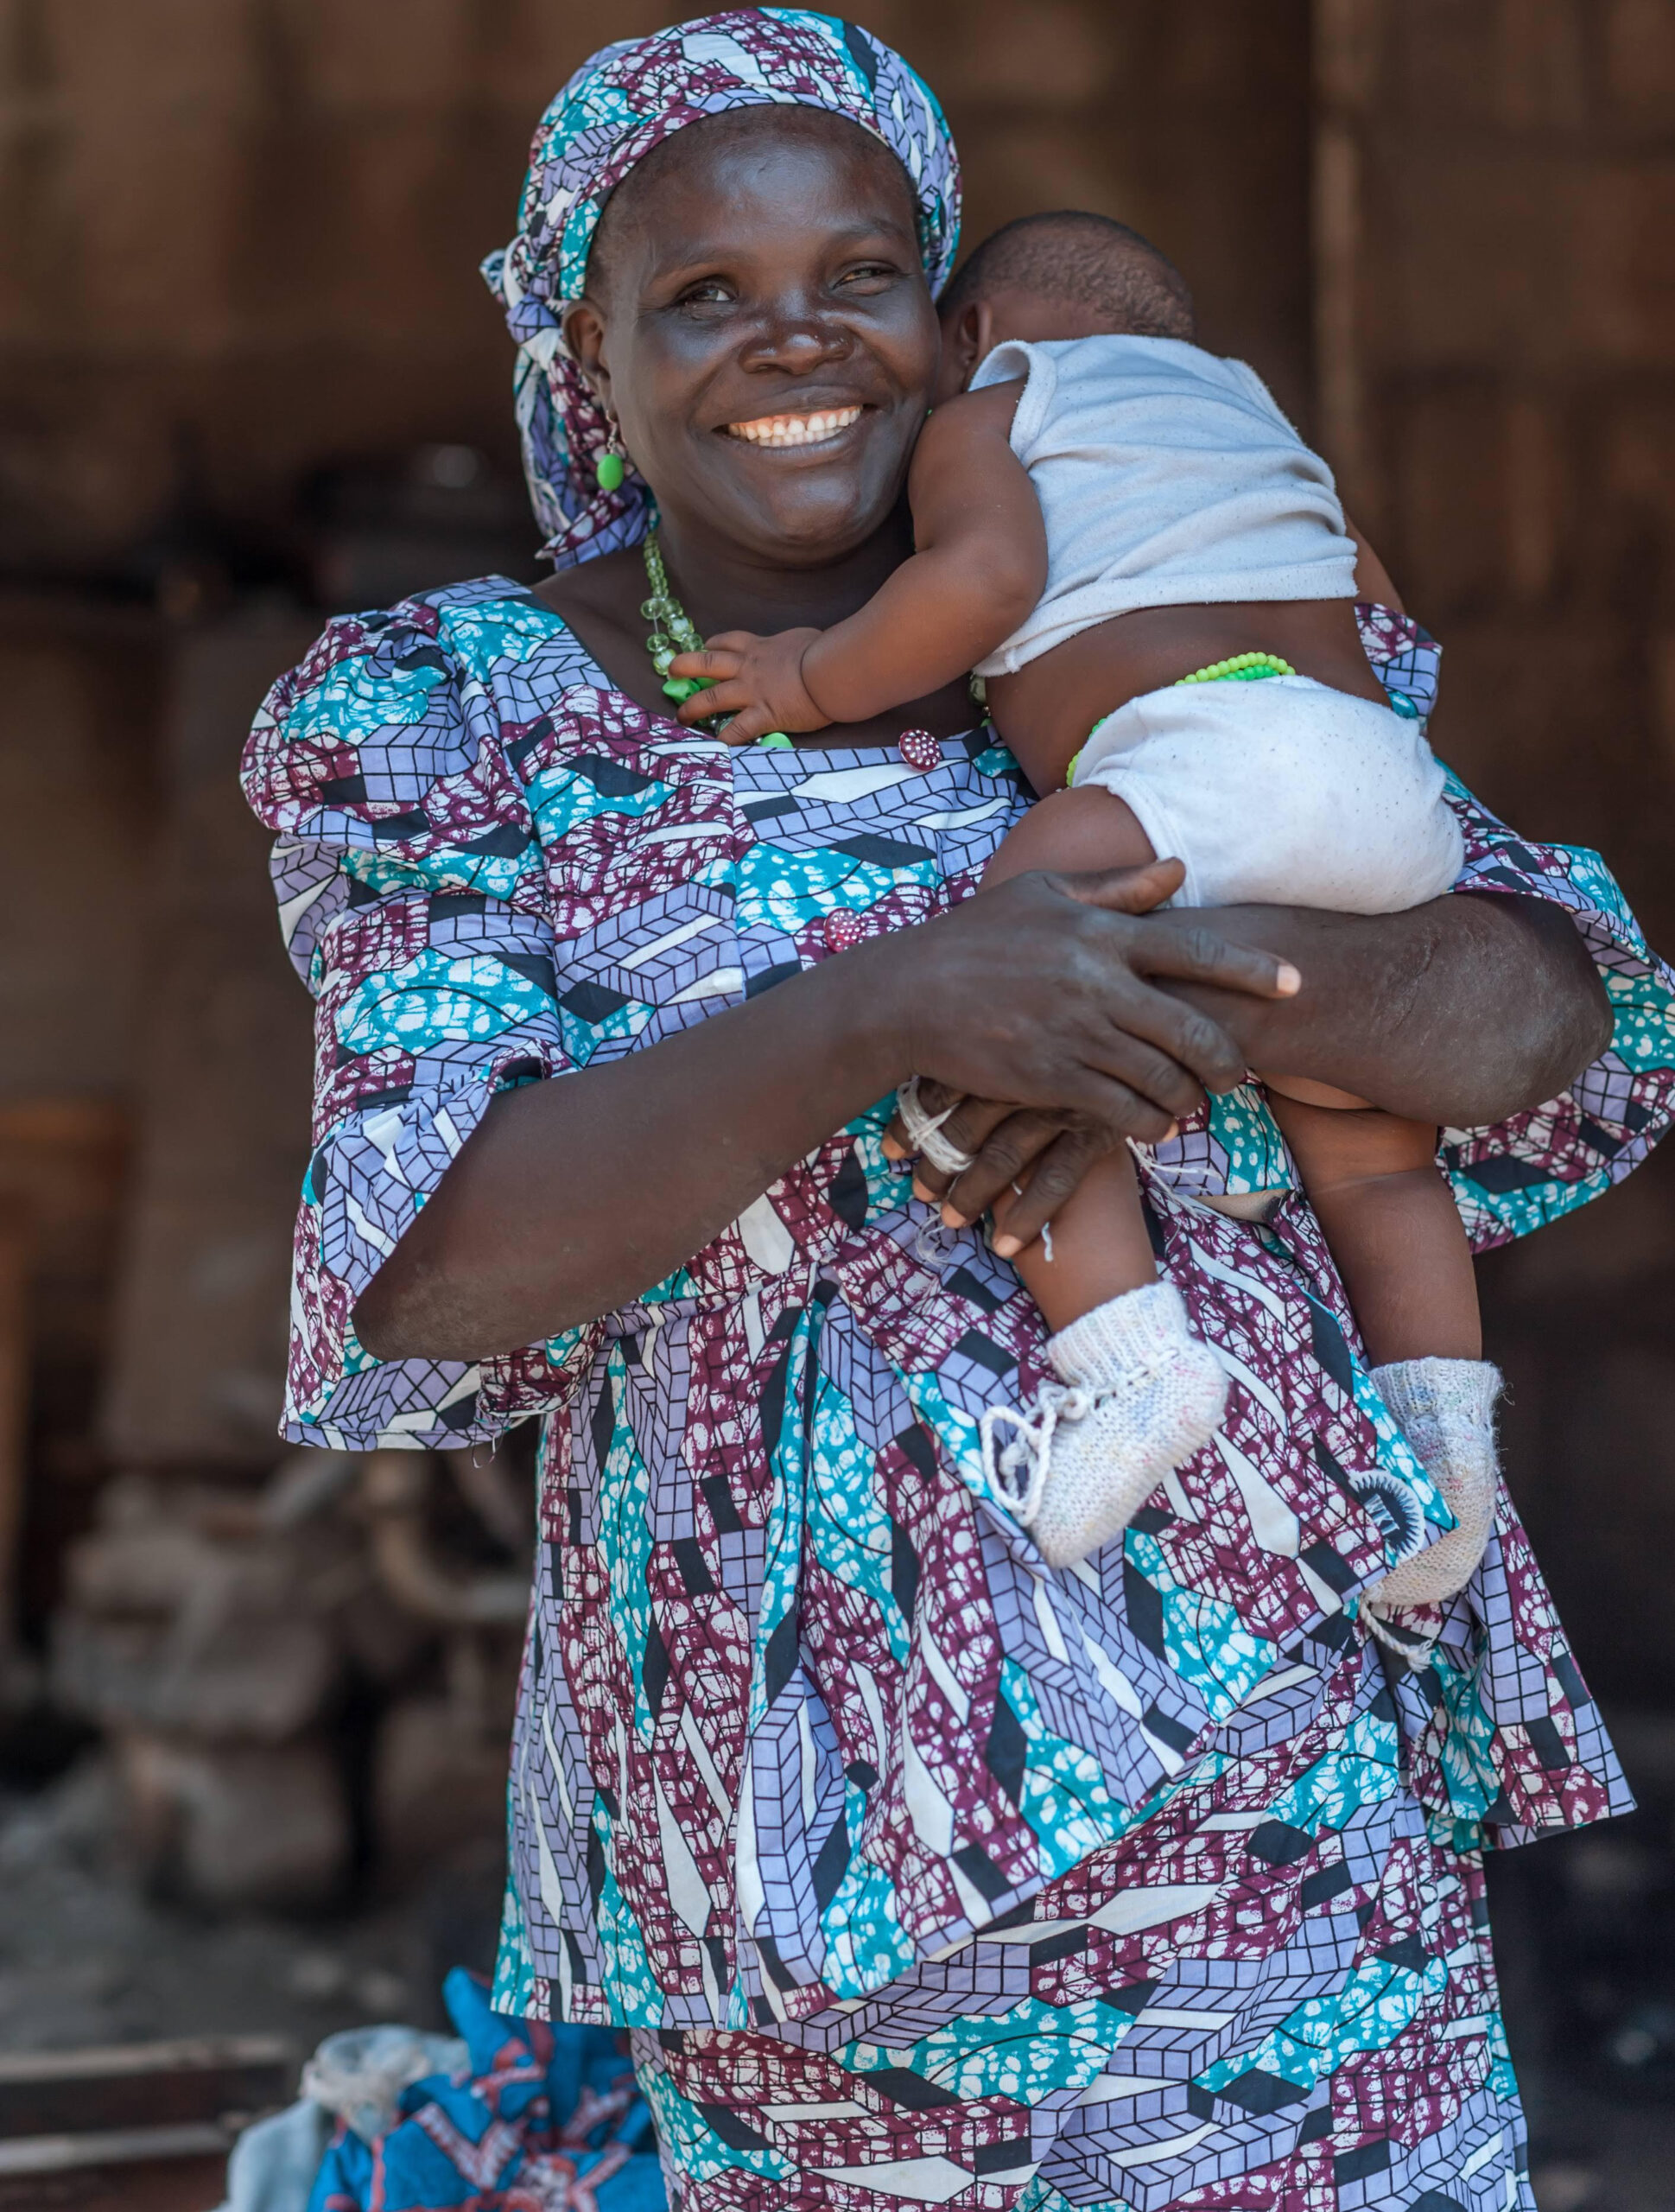 NIGERIA | SEP. 17, 2021 — Woman Still Recovering After Multiple Injuries in Boko Haram Bombing